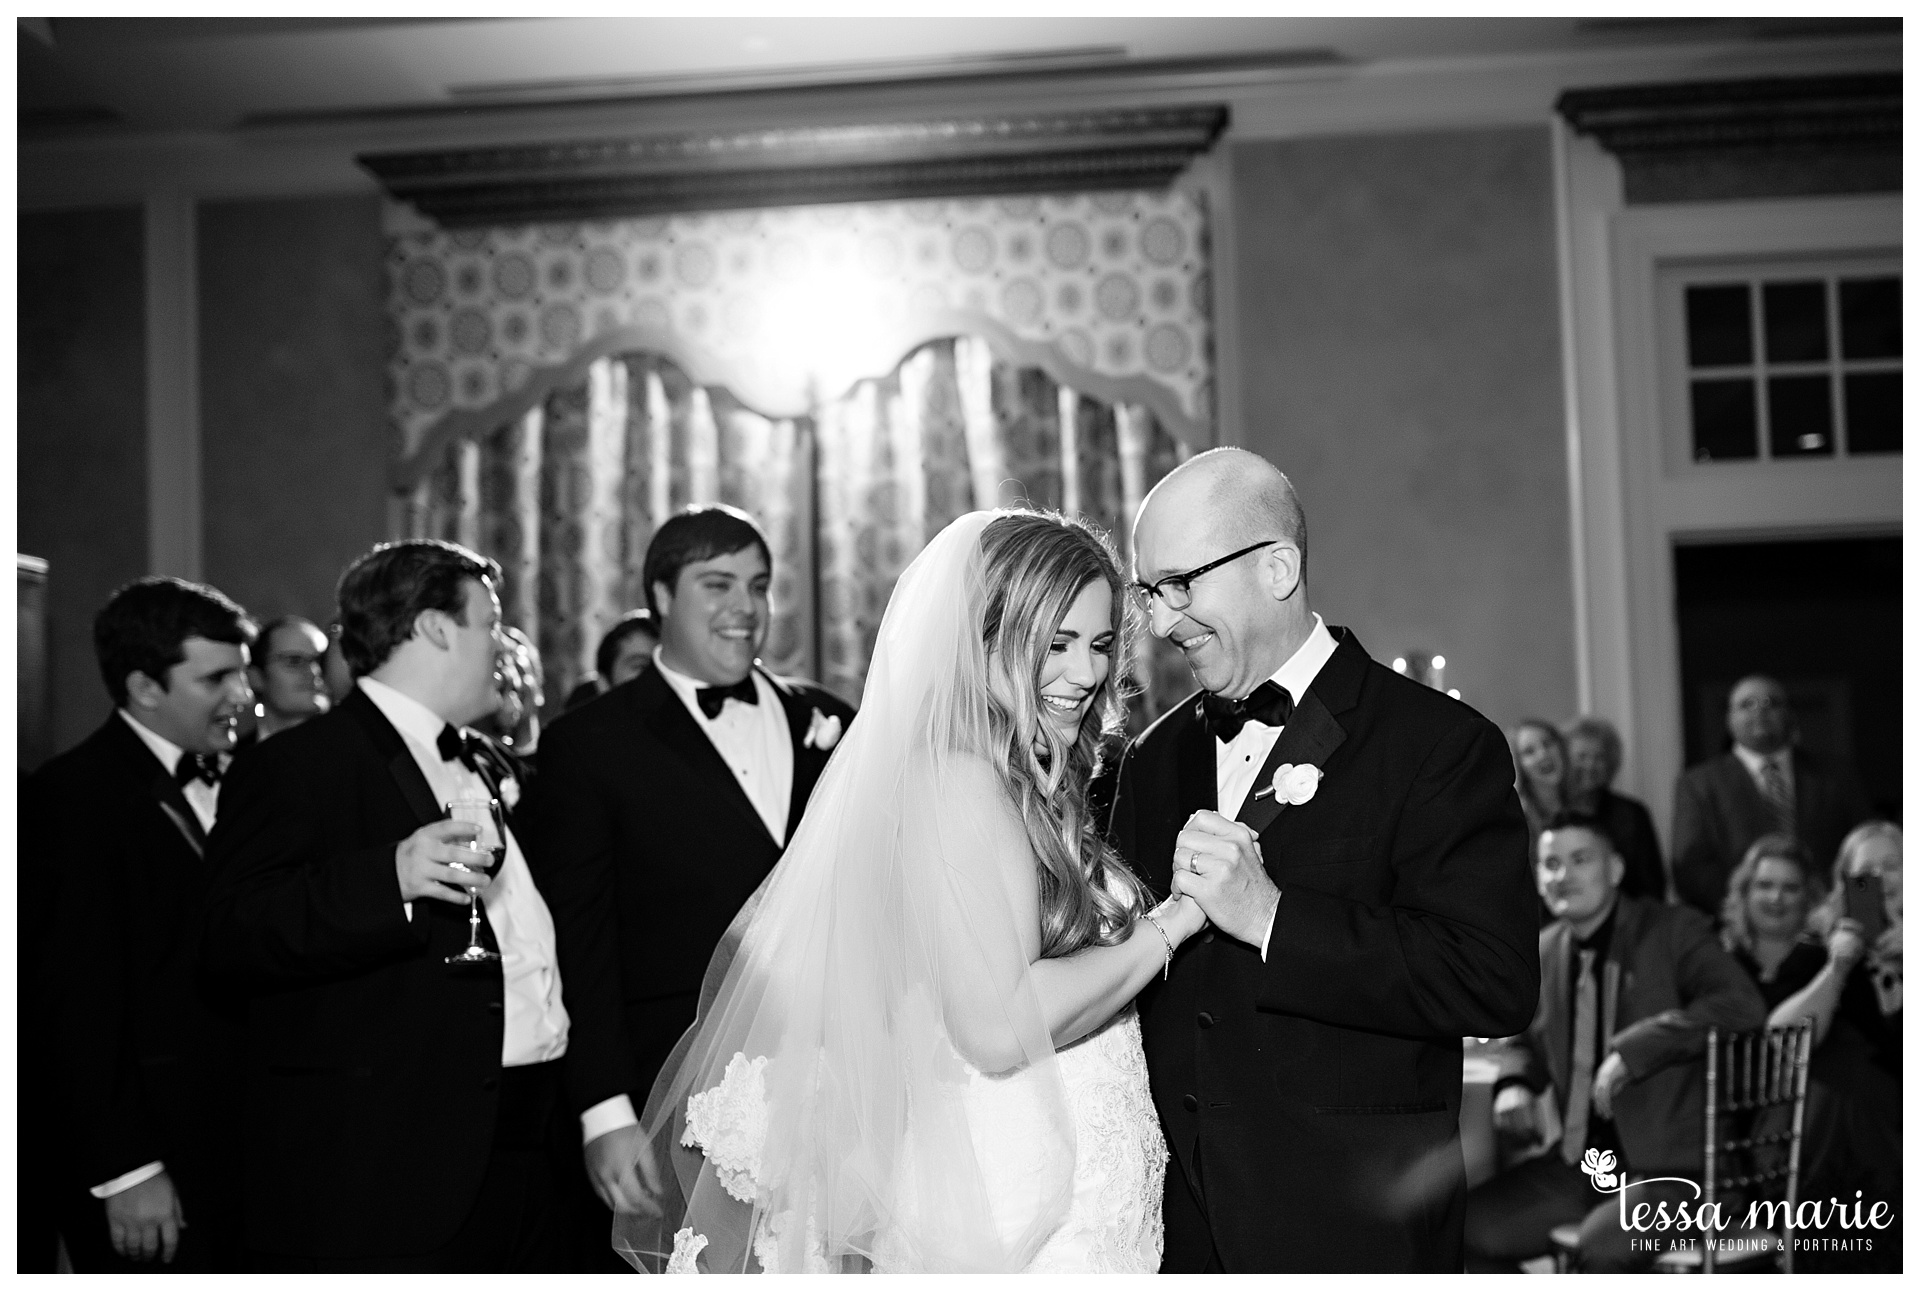 tessa_marie_weddings_legacy_story_focused_wedding_pictures_atlanta_wedding_photographer_0148